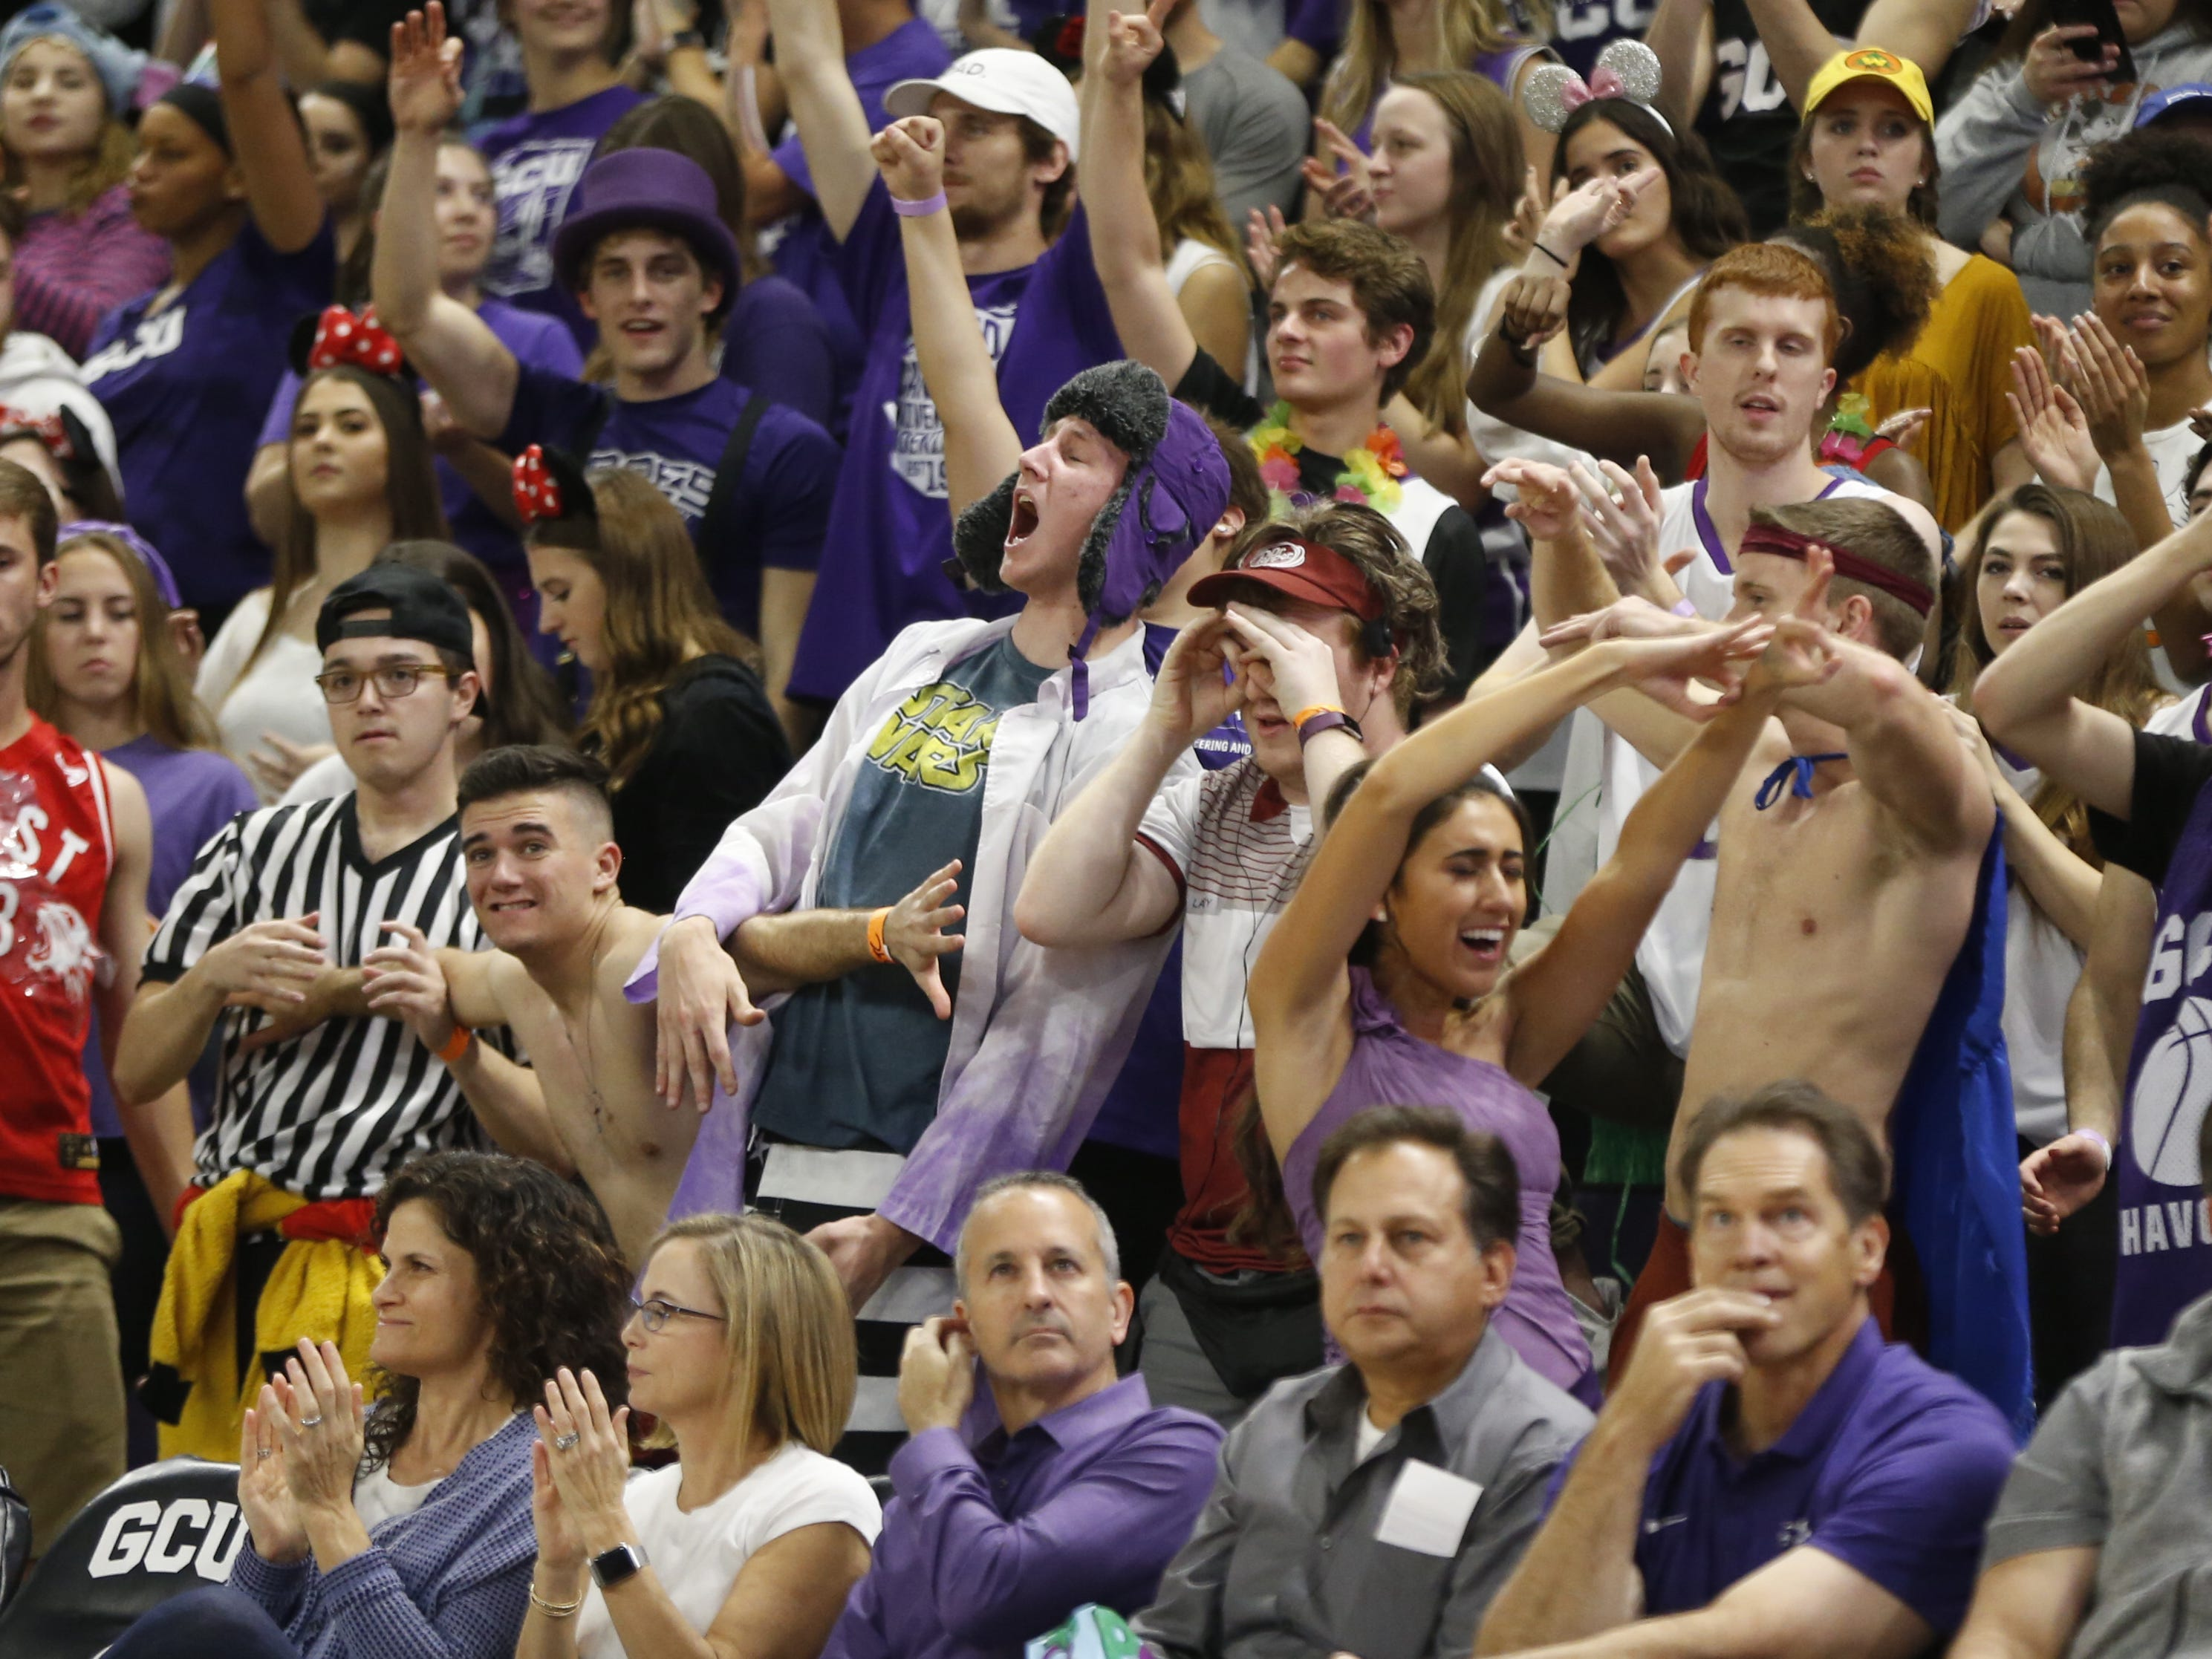 GCU fans react to a dunk against Chicago State University during the first half at Grand Canyon University Arena in Phoenix, Ariz. on January 17, 2019.